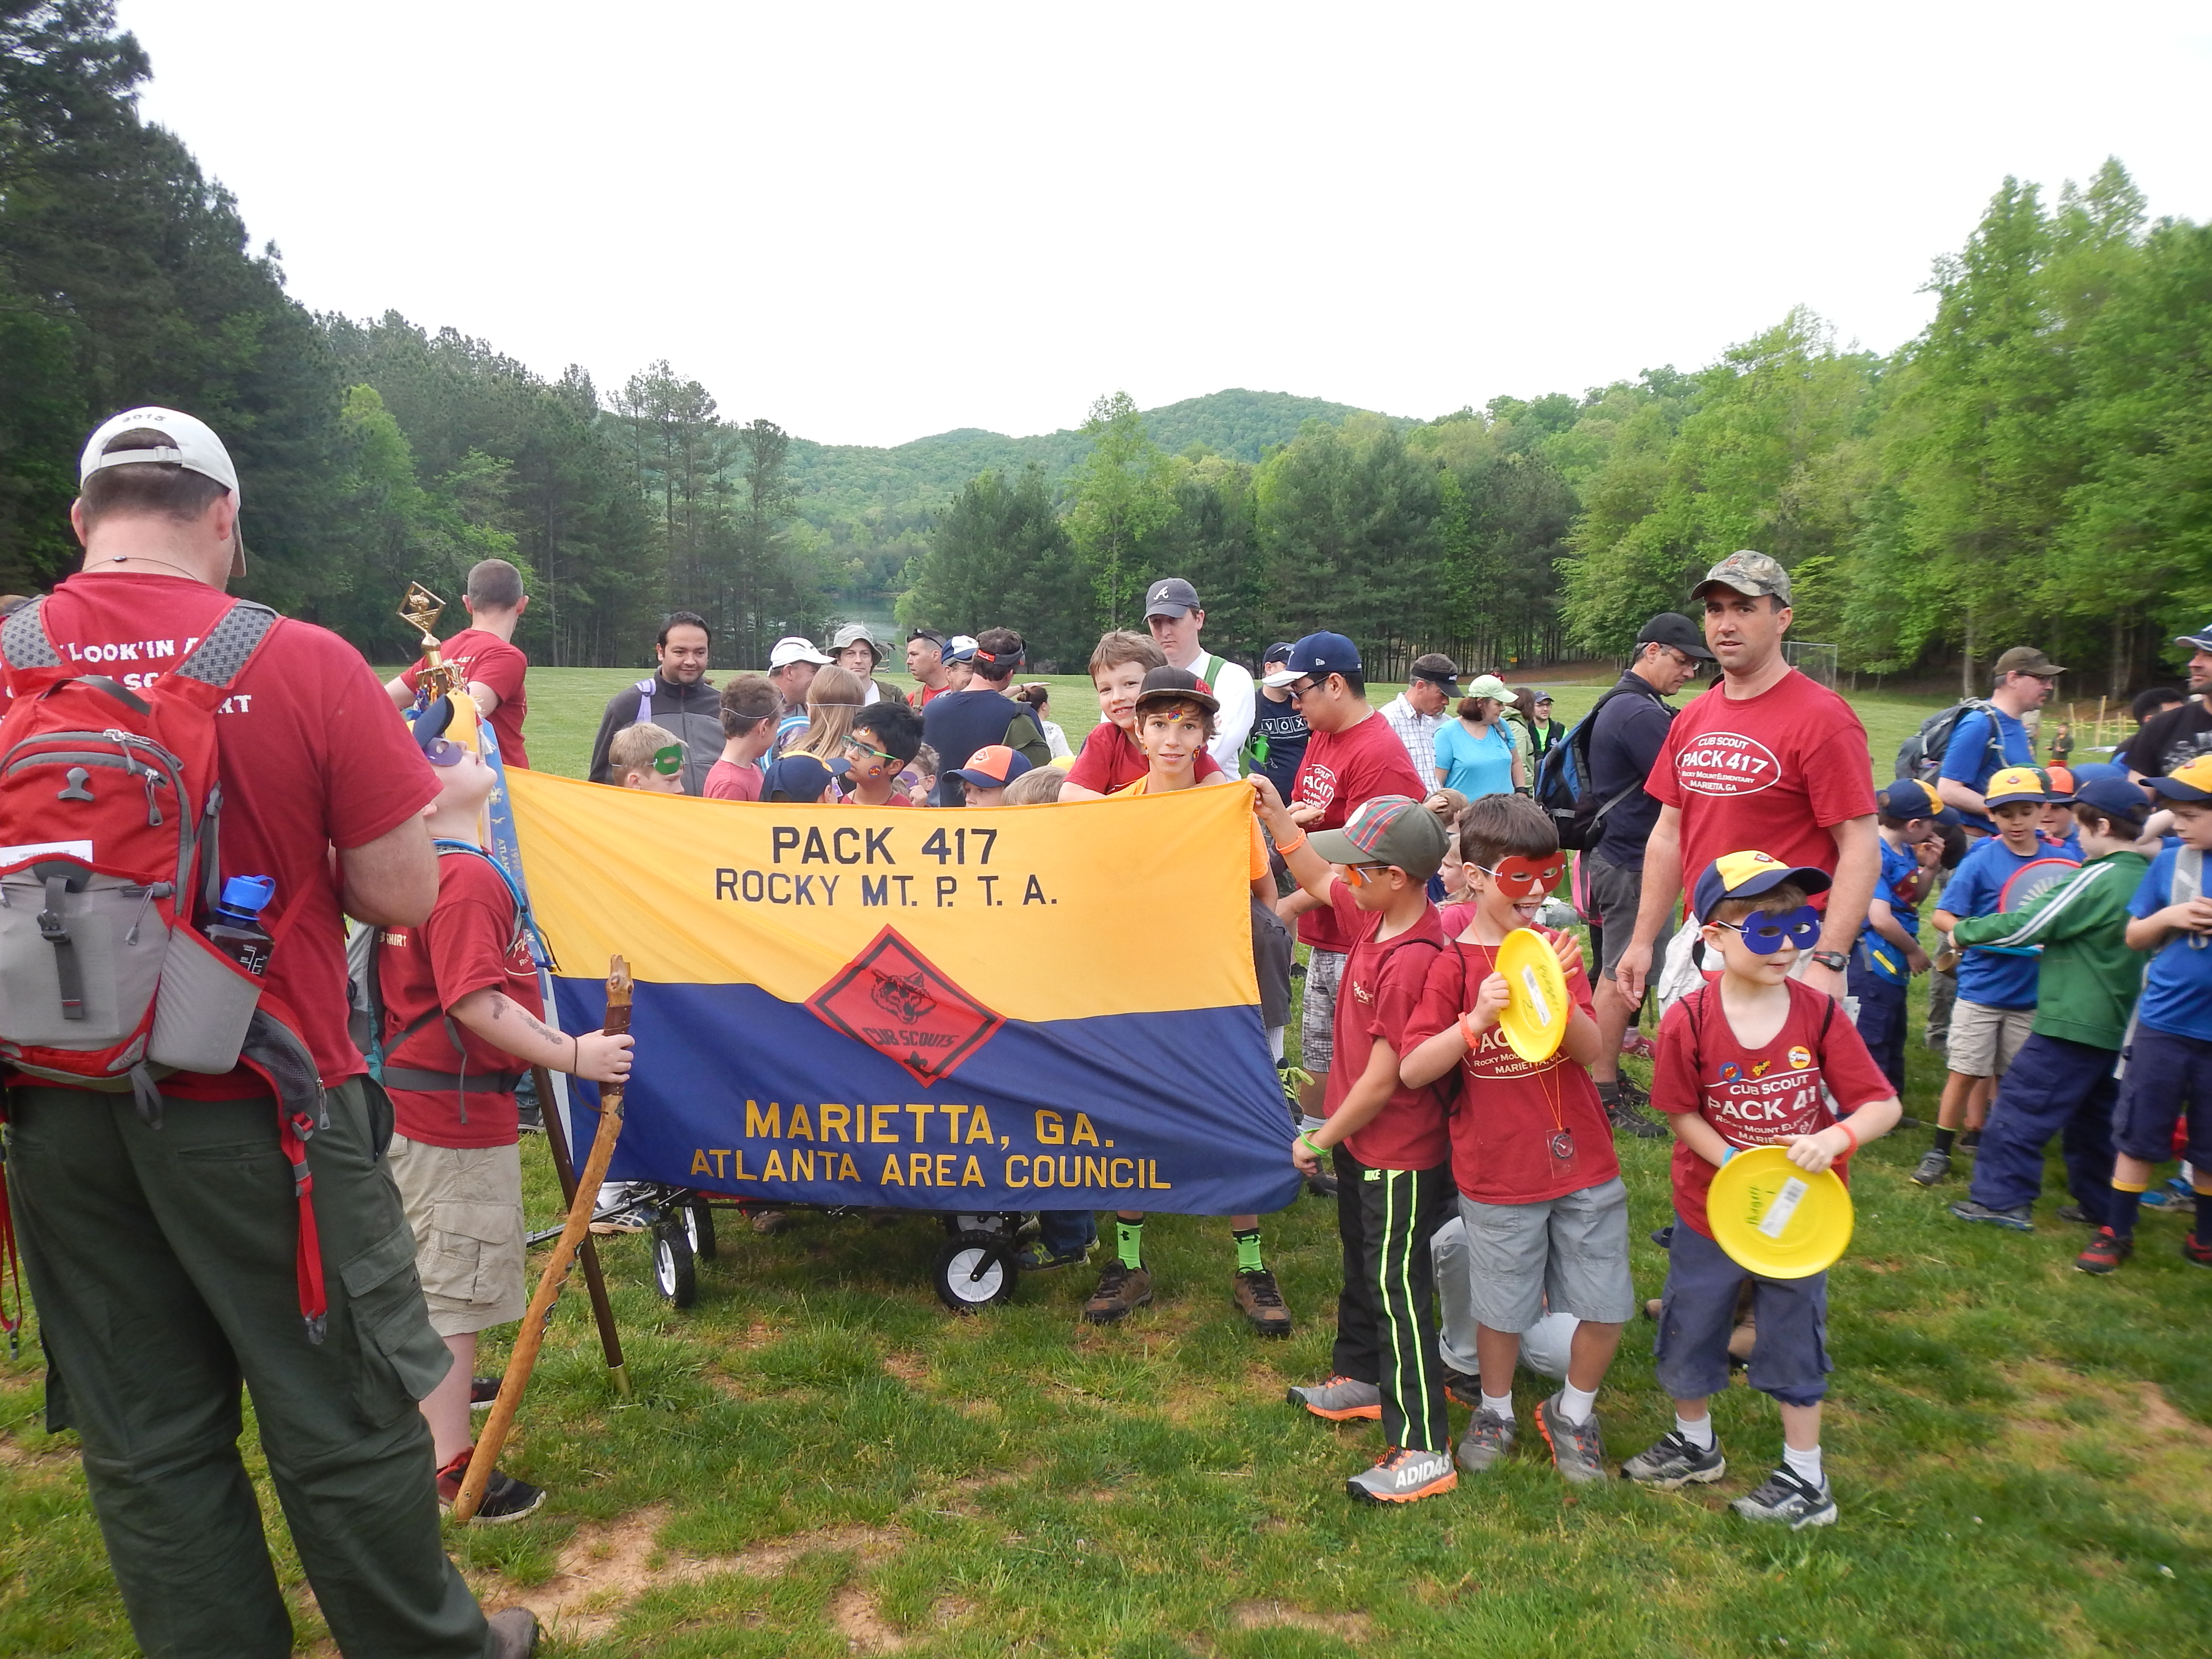 Pack 417 at the Foothills Spring Camporee